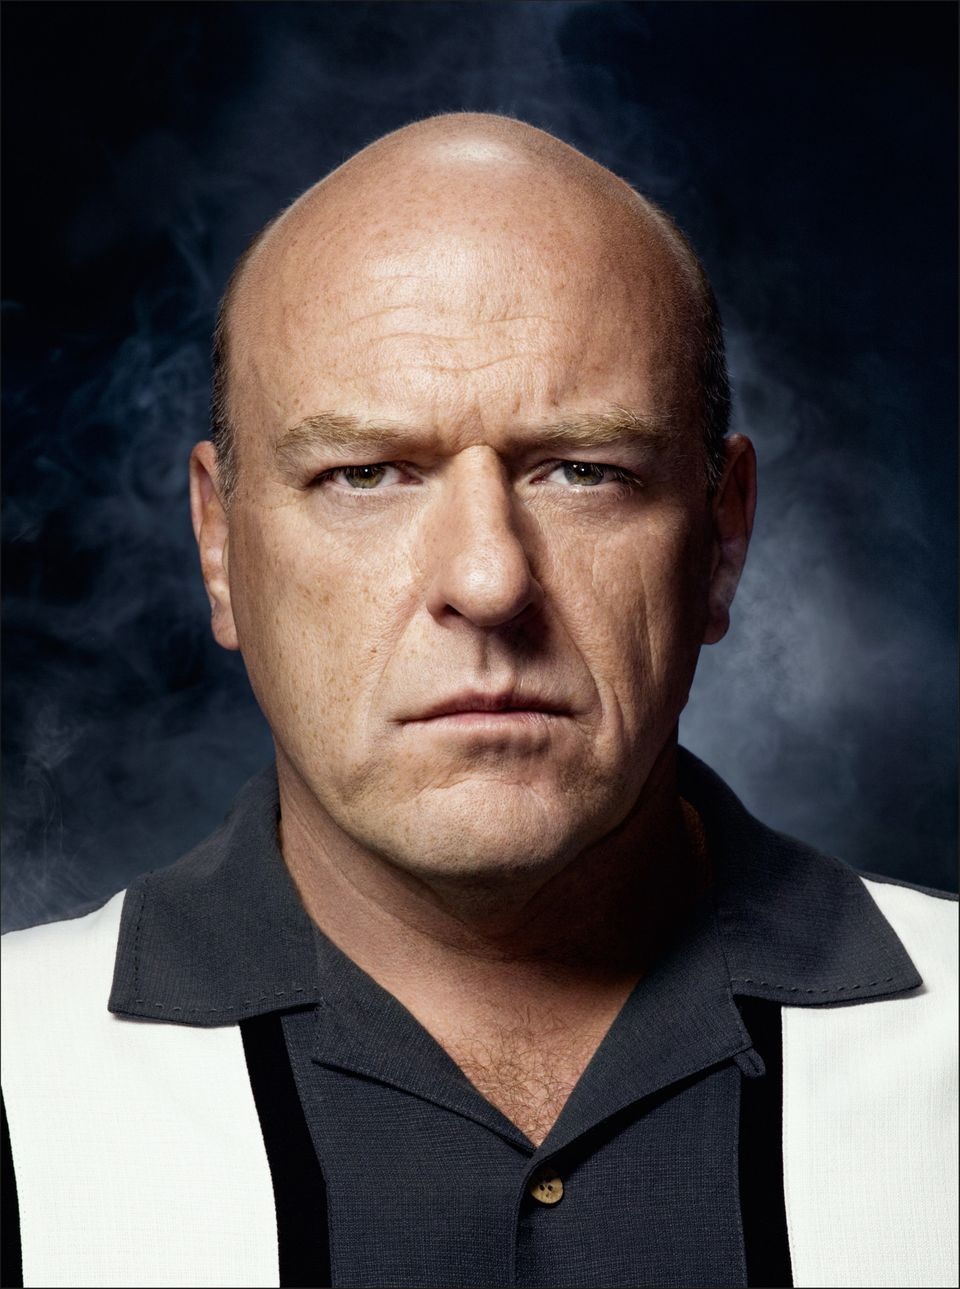 After the saga of Heisenberg comes to a close, Hank Schrader retires from the DEA and opens 'Hank's Crystal Hut,' an emporium